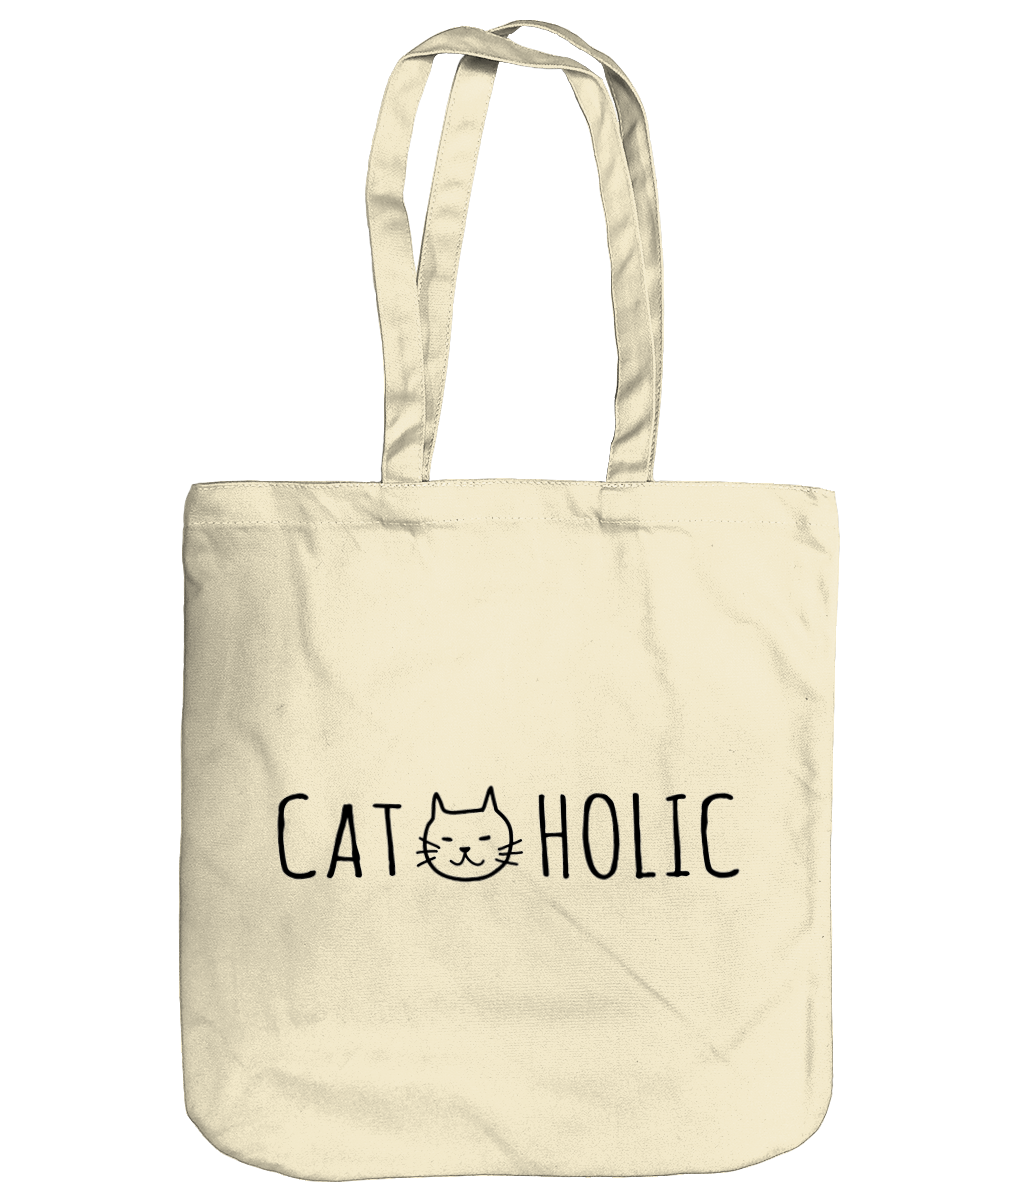 Organic Cotton Tote Bag Cat-holic